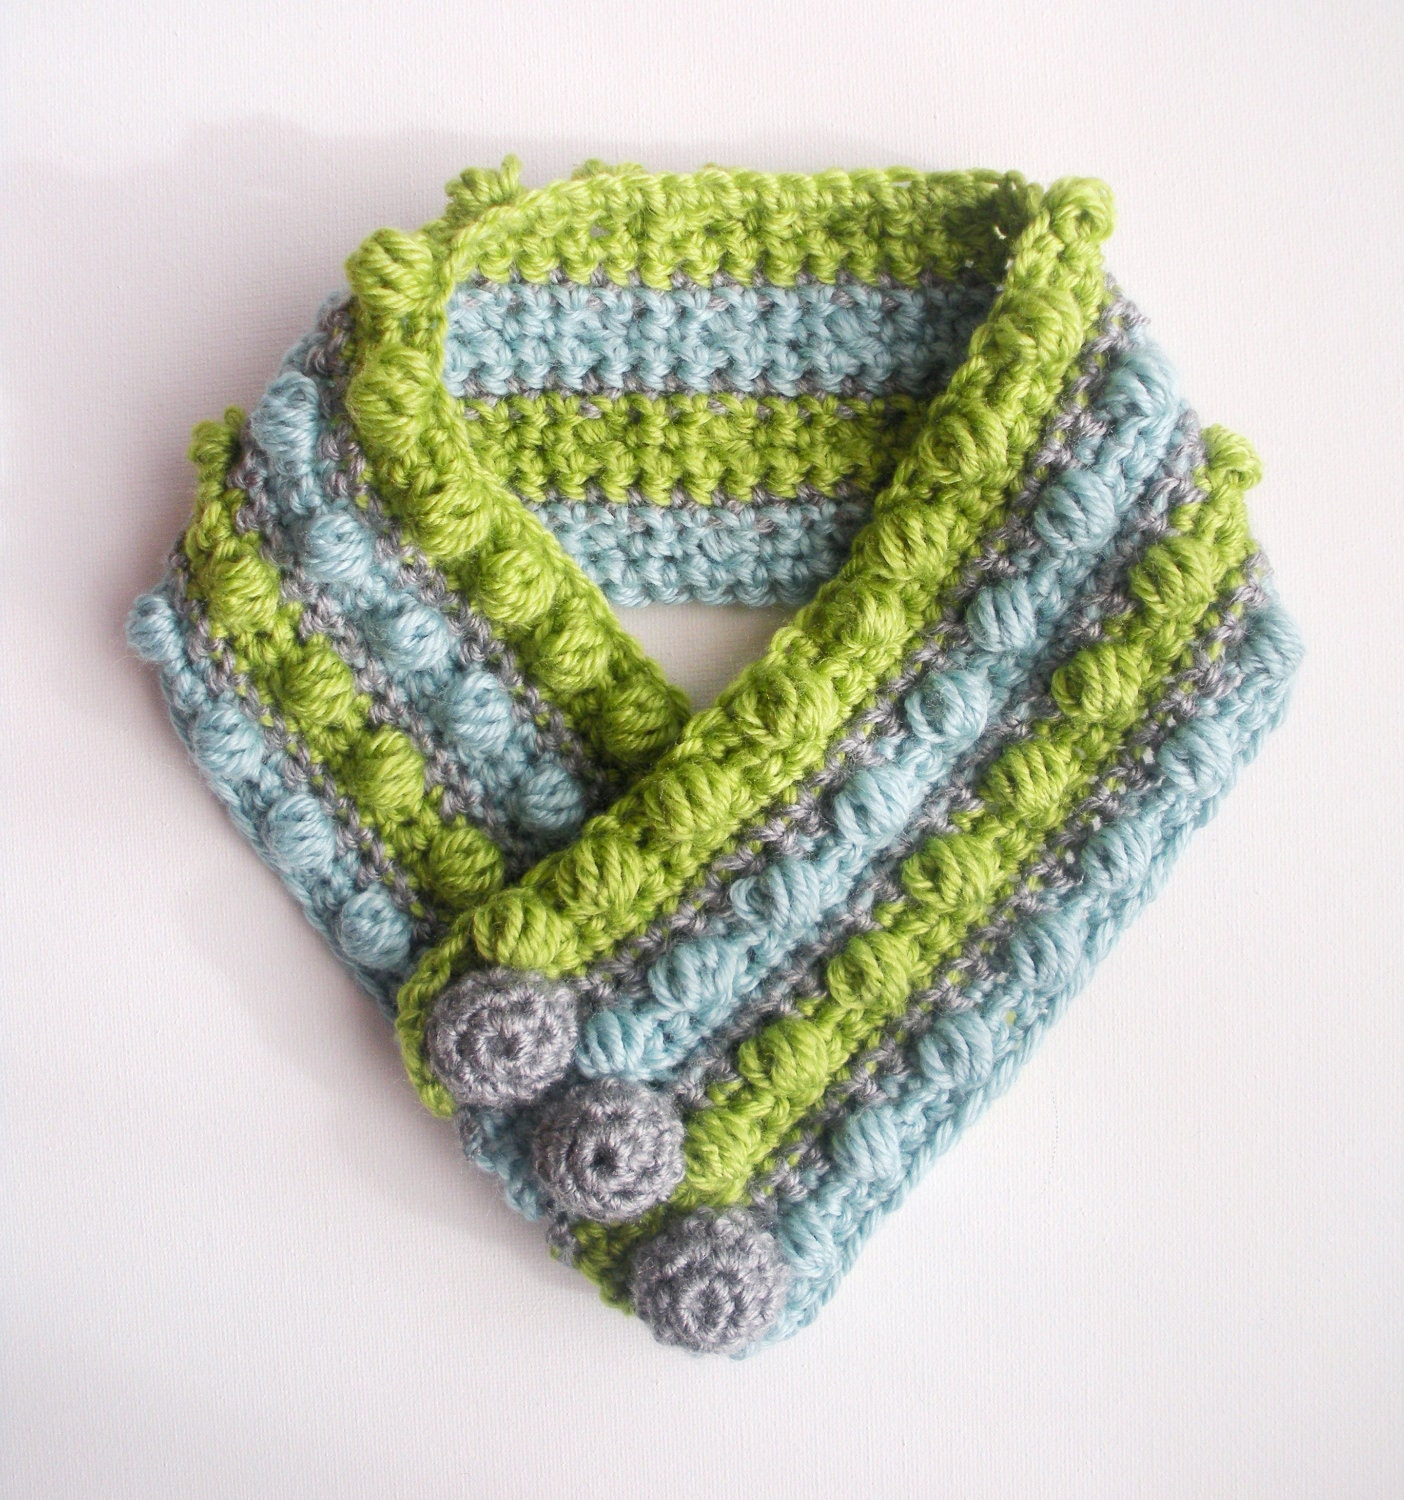 Childrens Crochet Scarf Gumdrops Wool Bamboo Unisex Striped Neck  Crochet Childrens Scarf